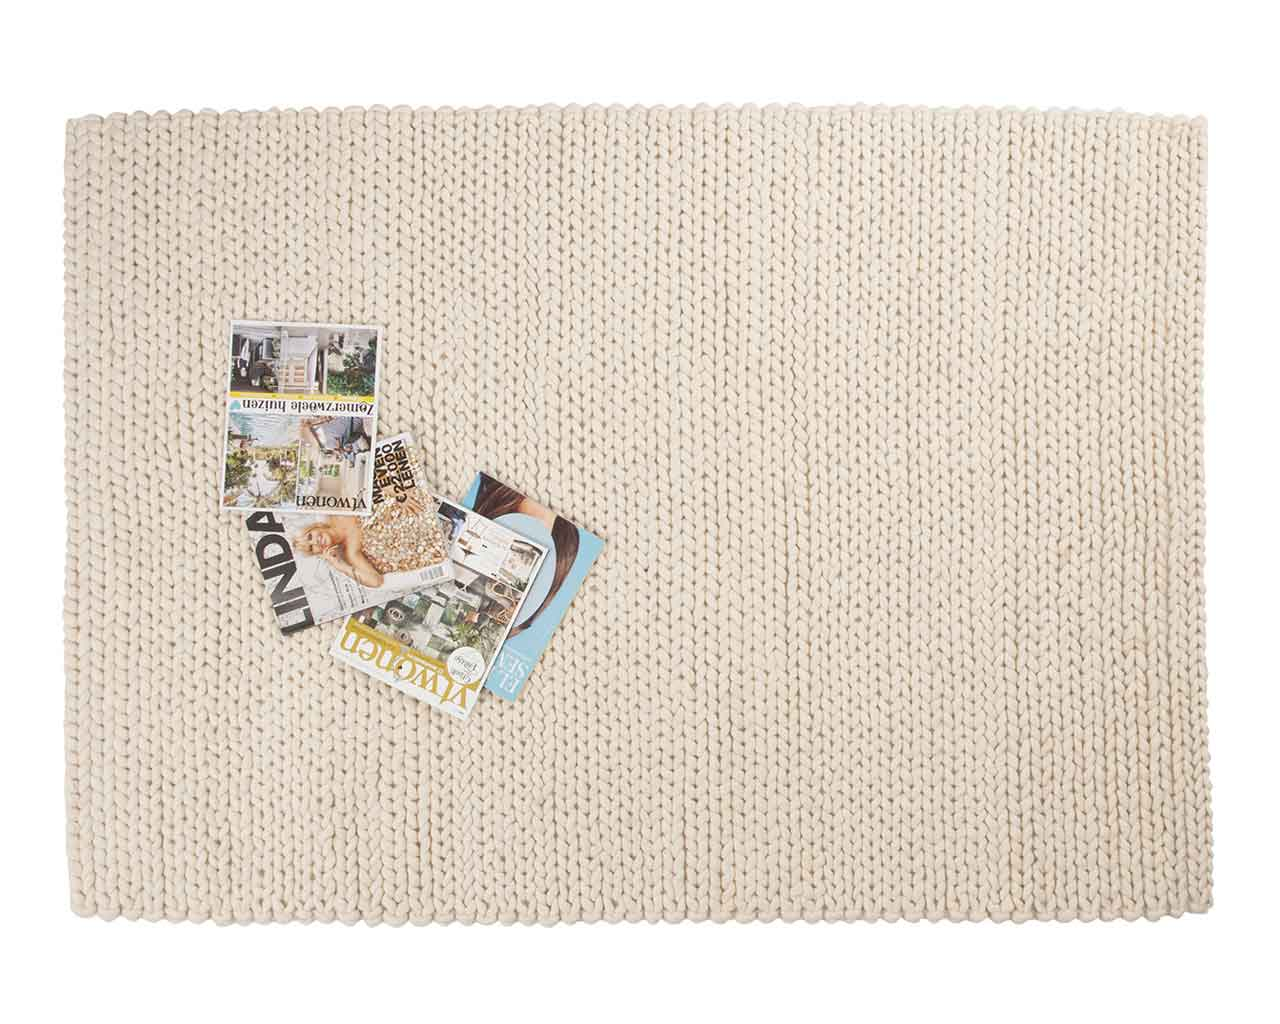 reading magazines soft woolen white carpet at home 1